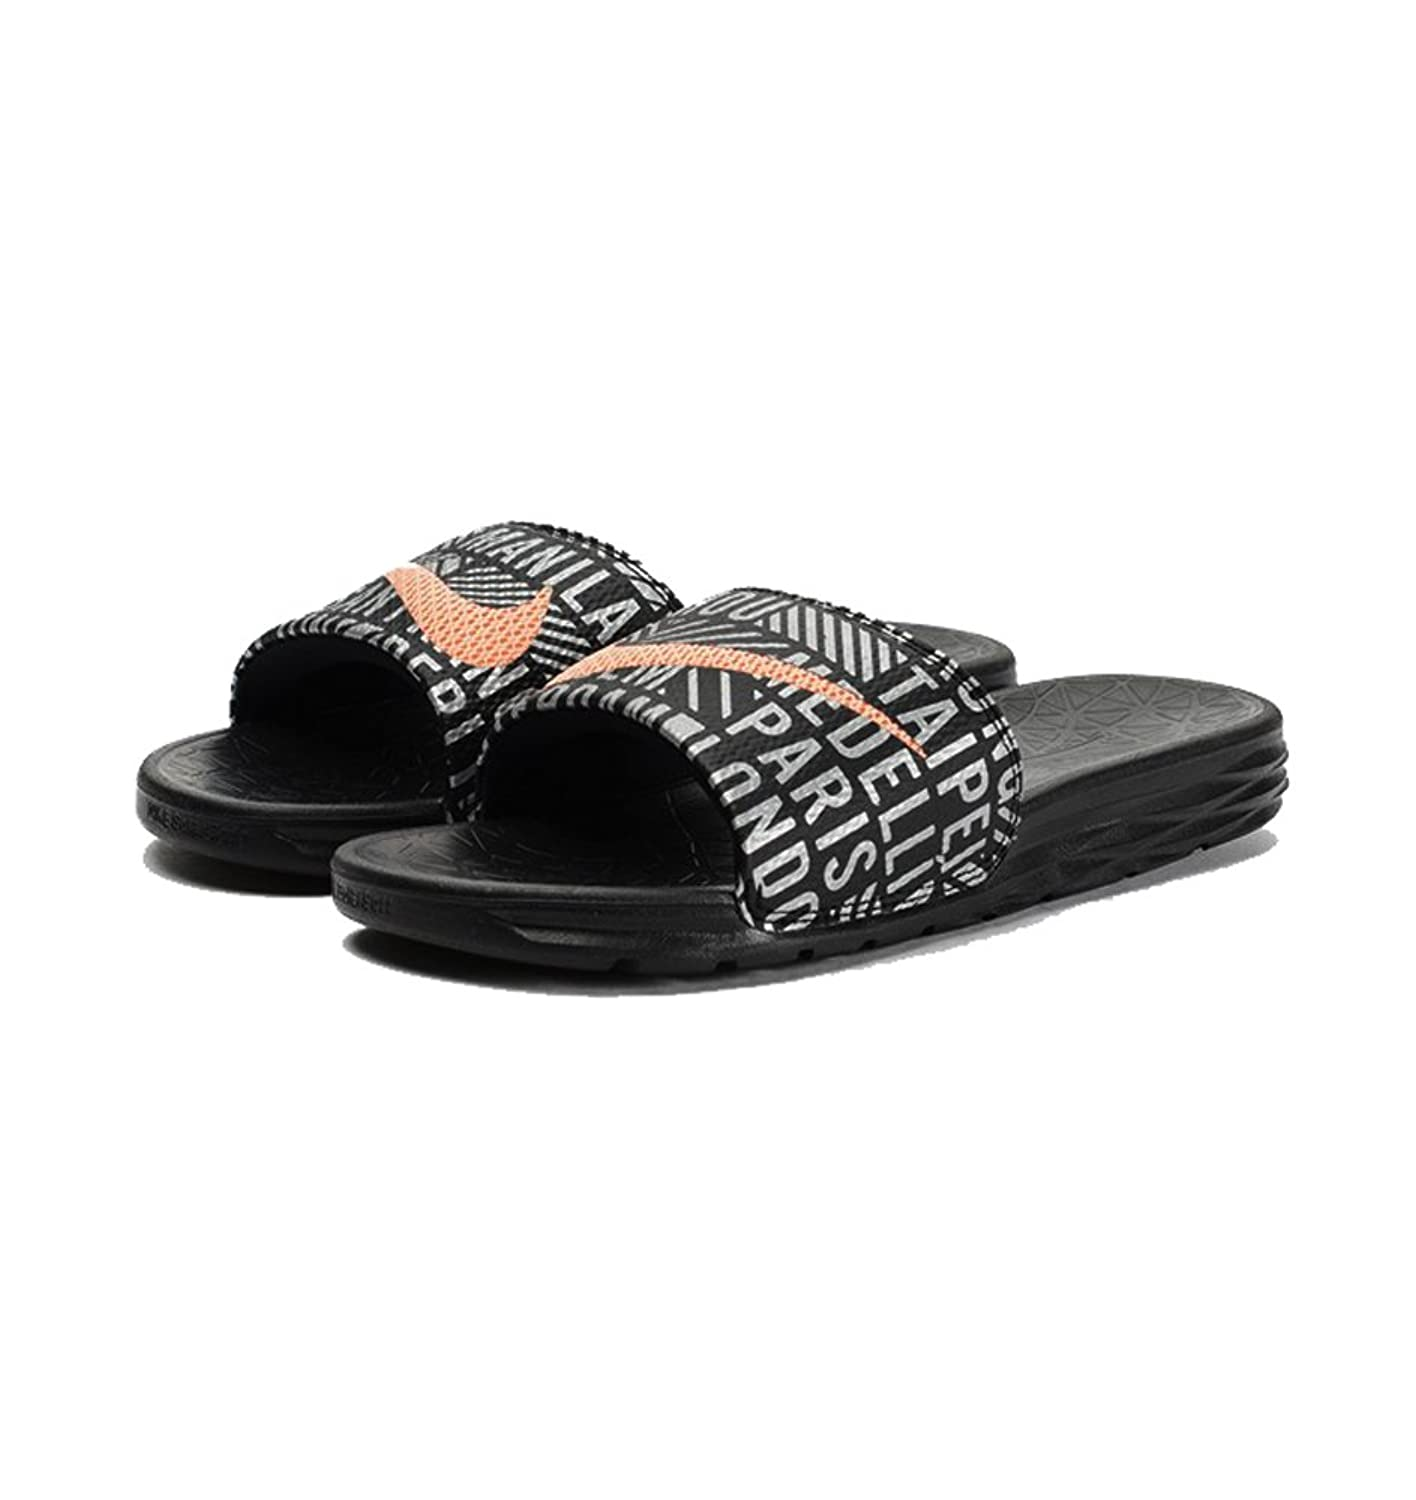 799087-080 Nike Women's Benassi-SolarSoft Slide Sandals